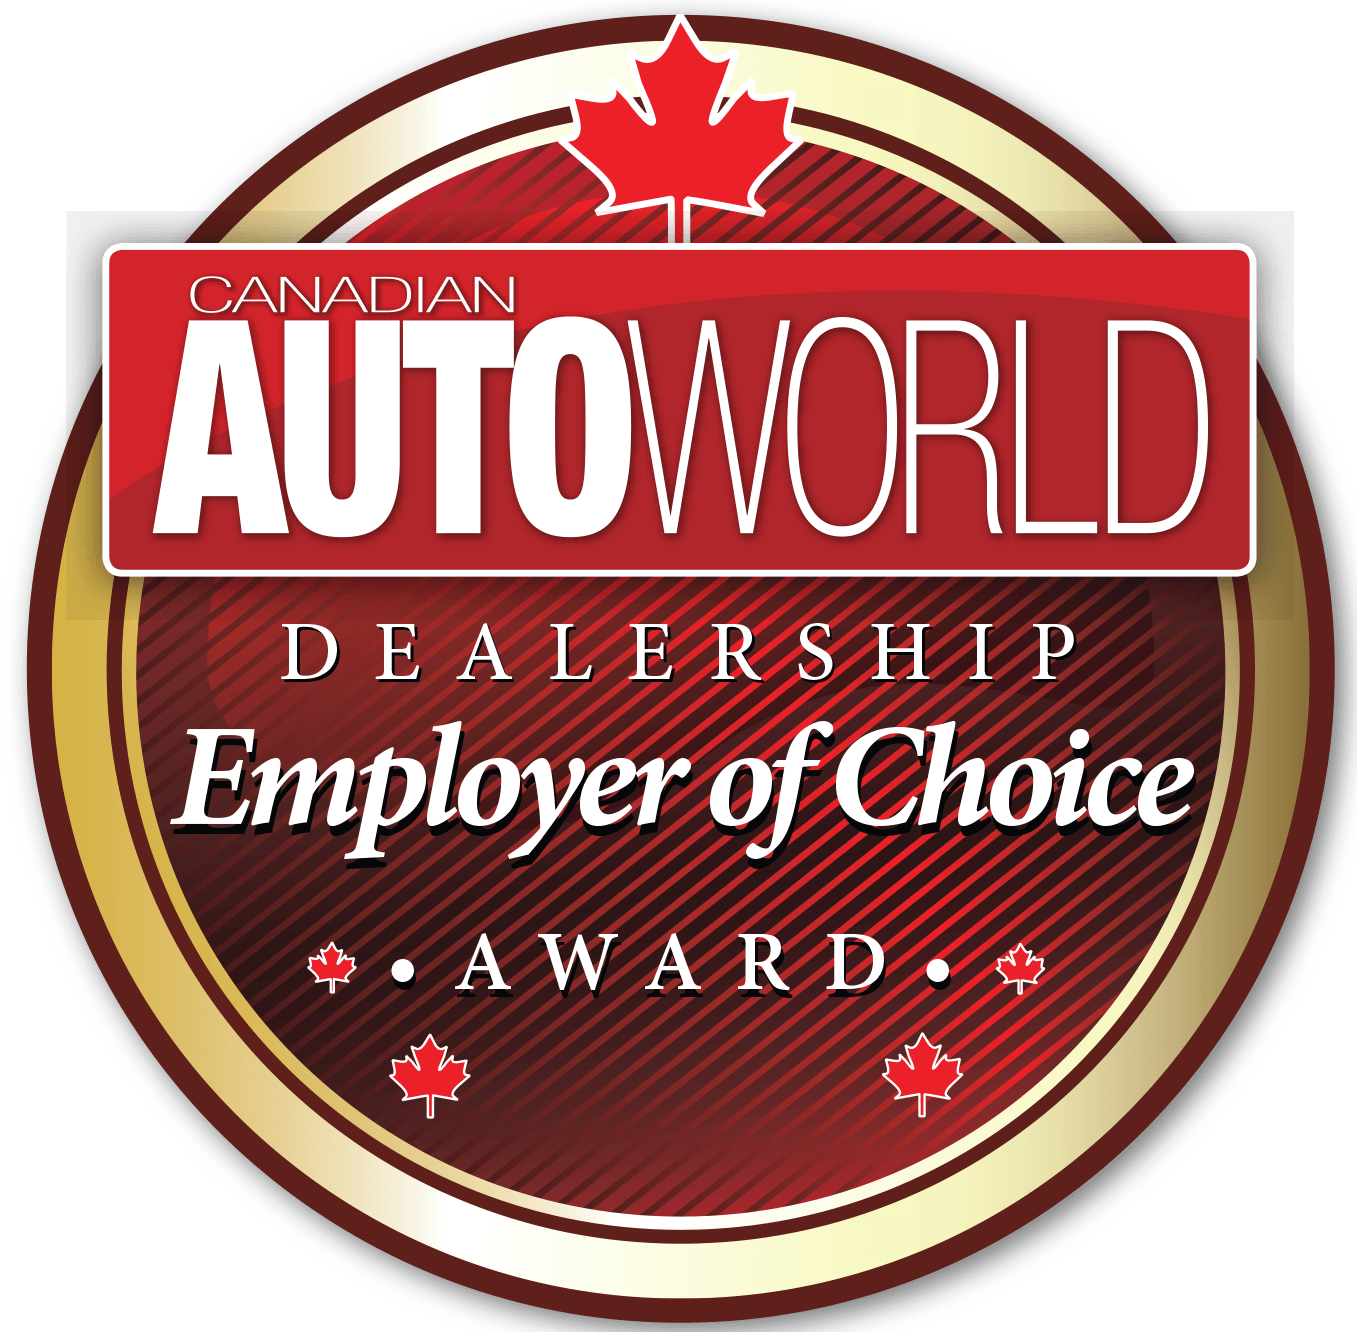 CAWEOC Dealership Employer of Choice Award